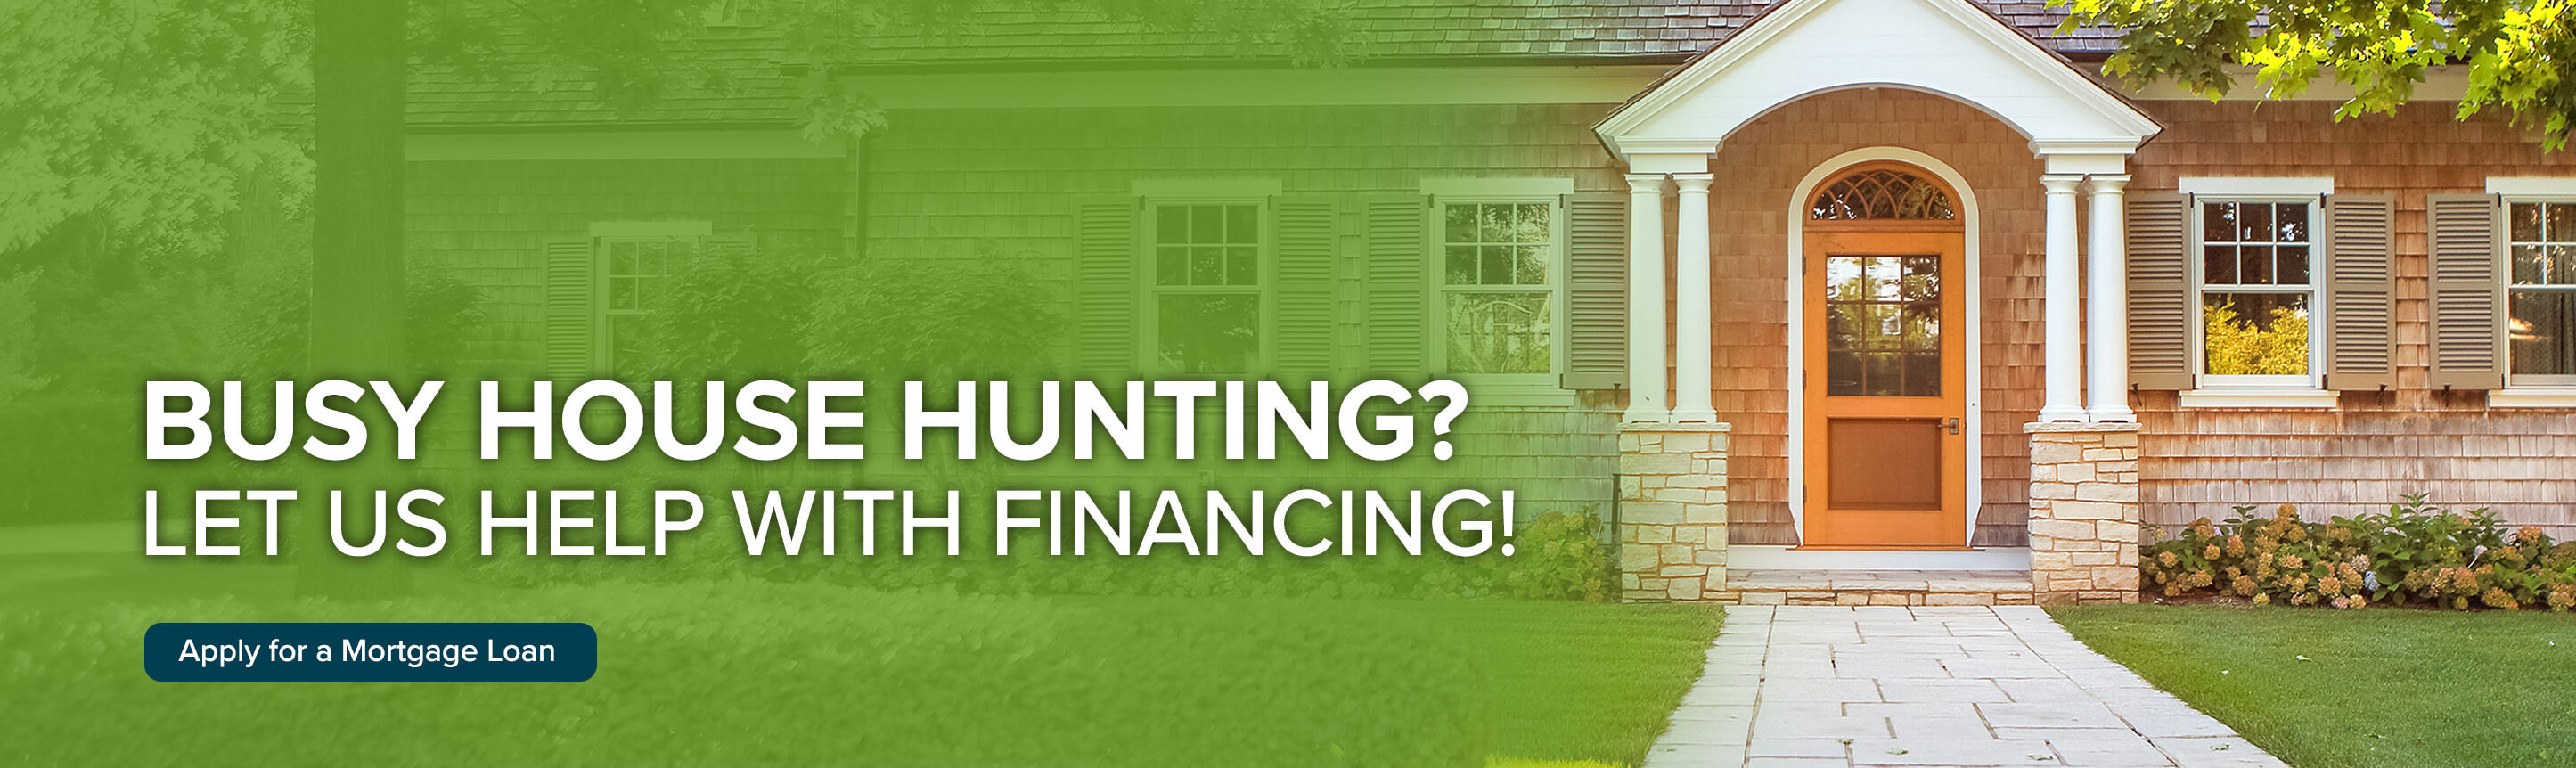 Busy house hunting? Let us help you with financing! Apply for a mortgage